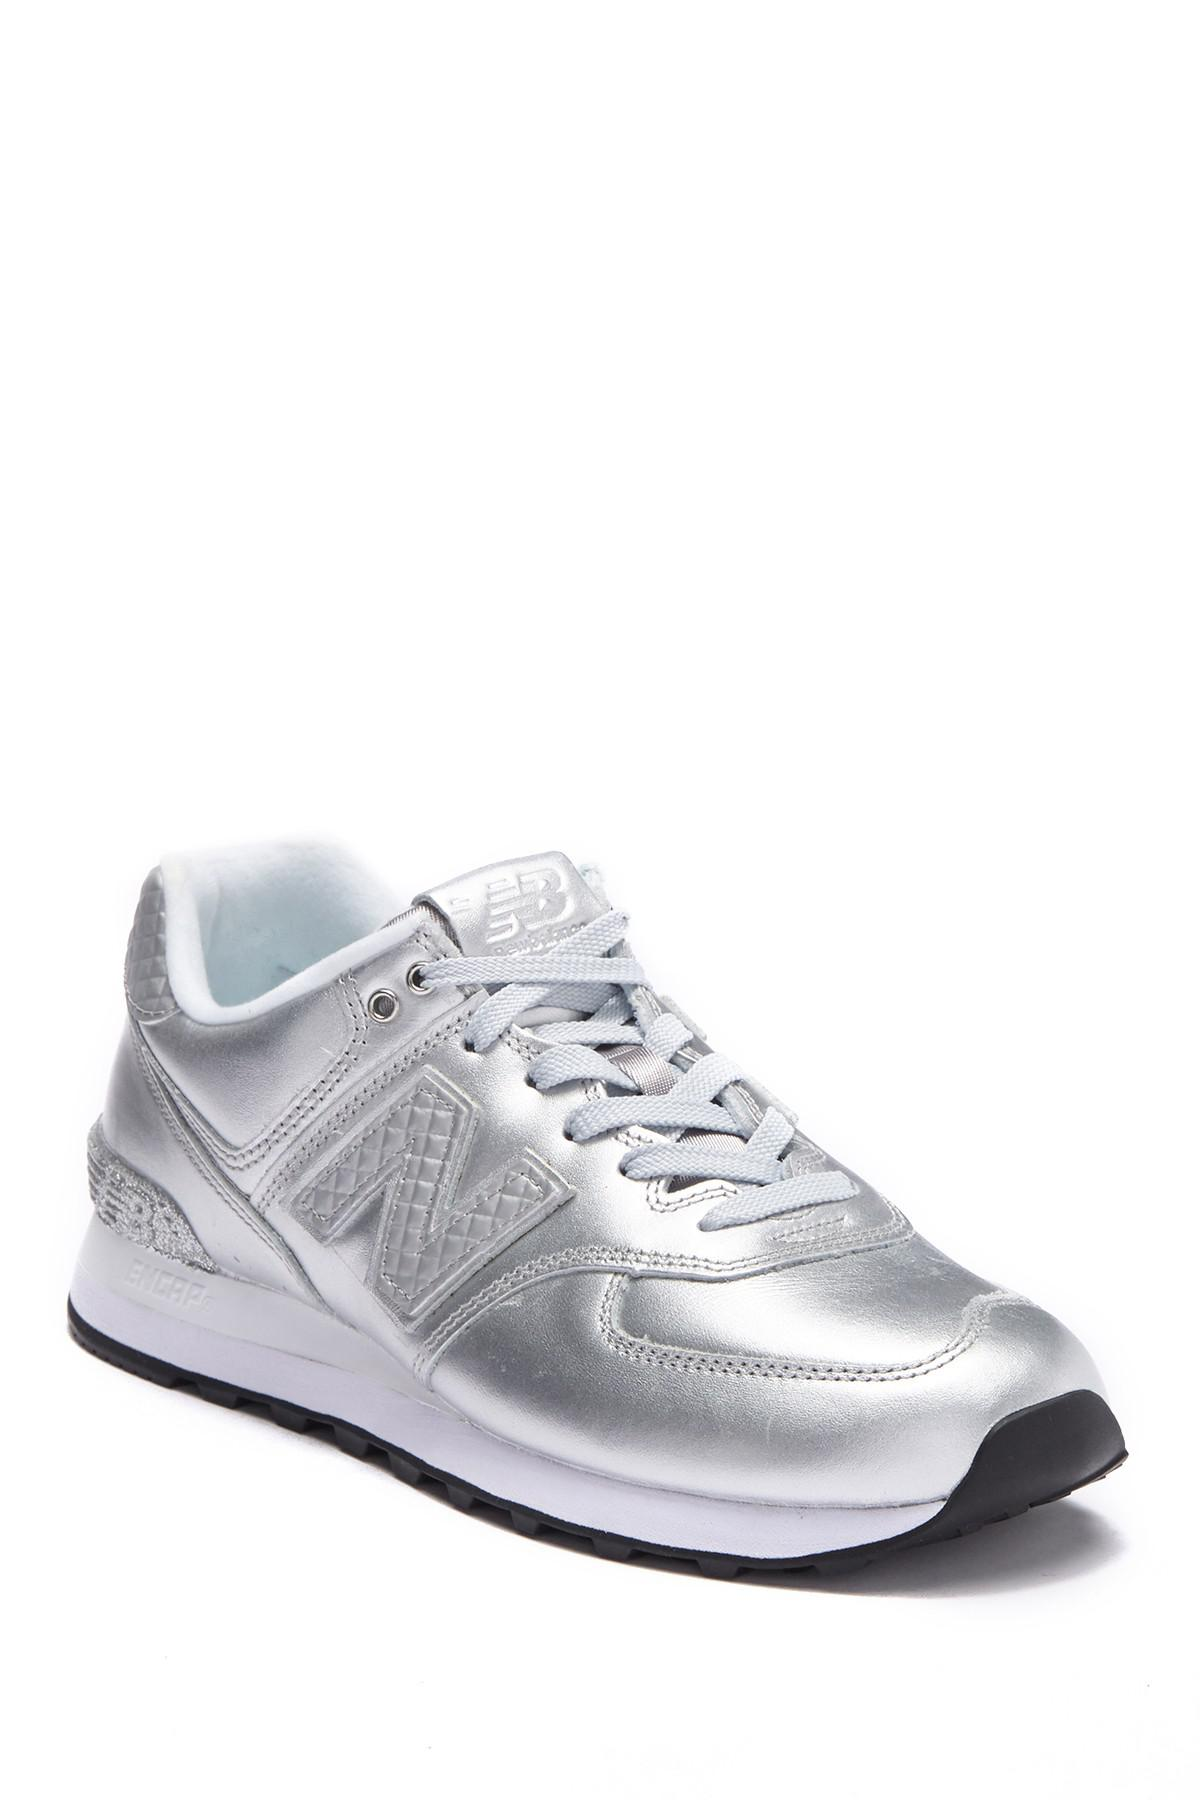 c0bb41683cd Gallery. Previously sold at  Nordstrom Rack · Women s New Balance 574 ...